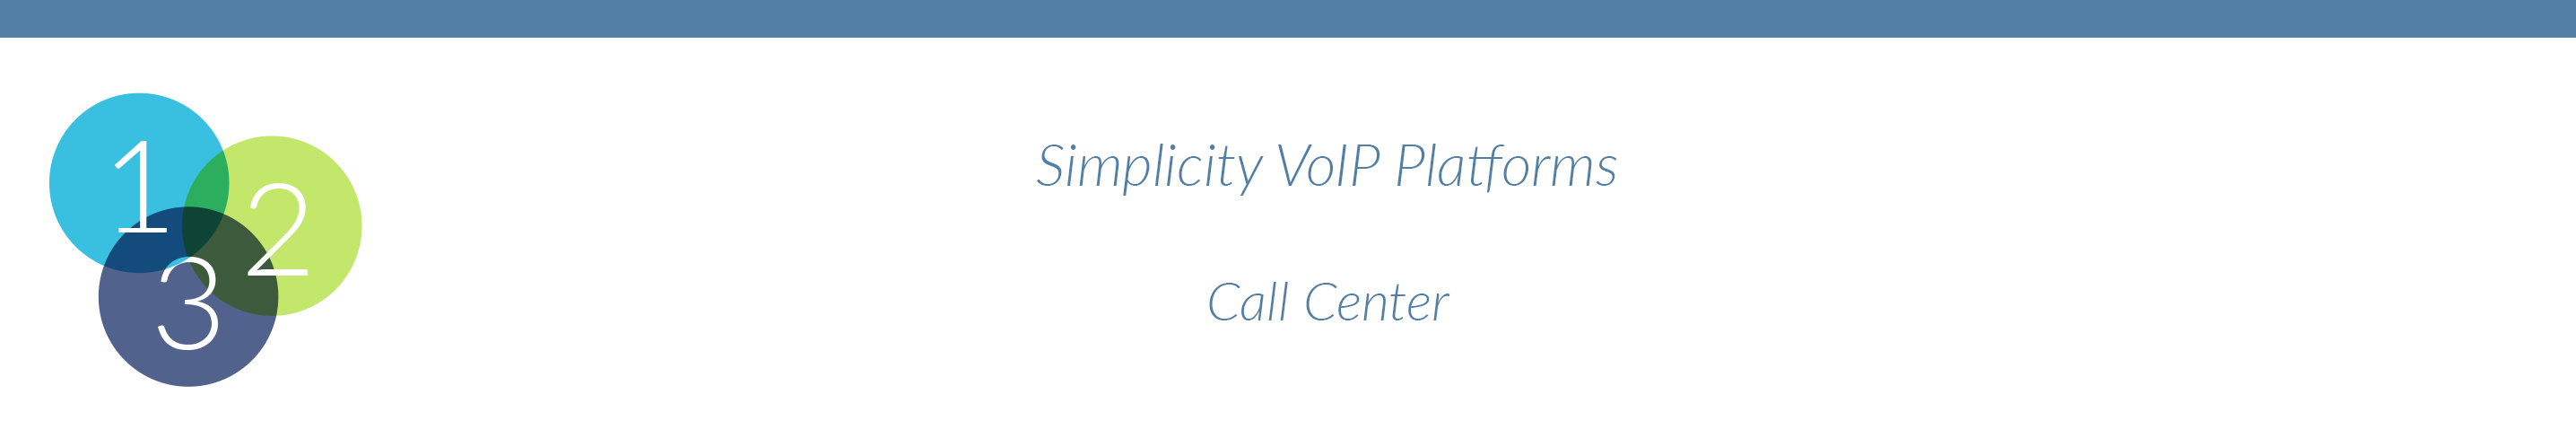 call center banner.png